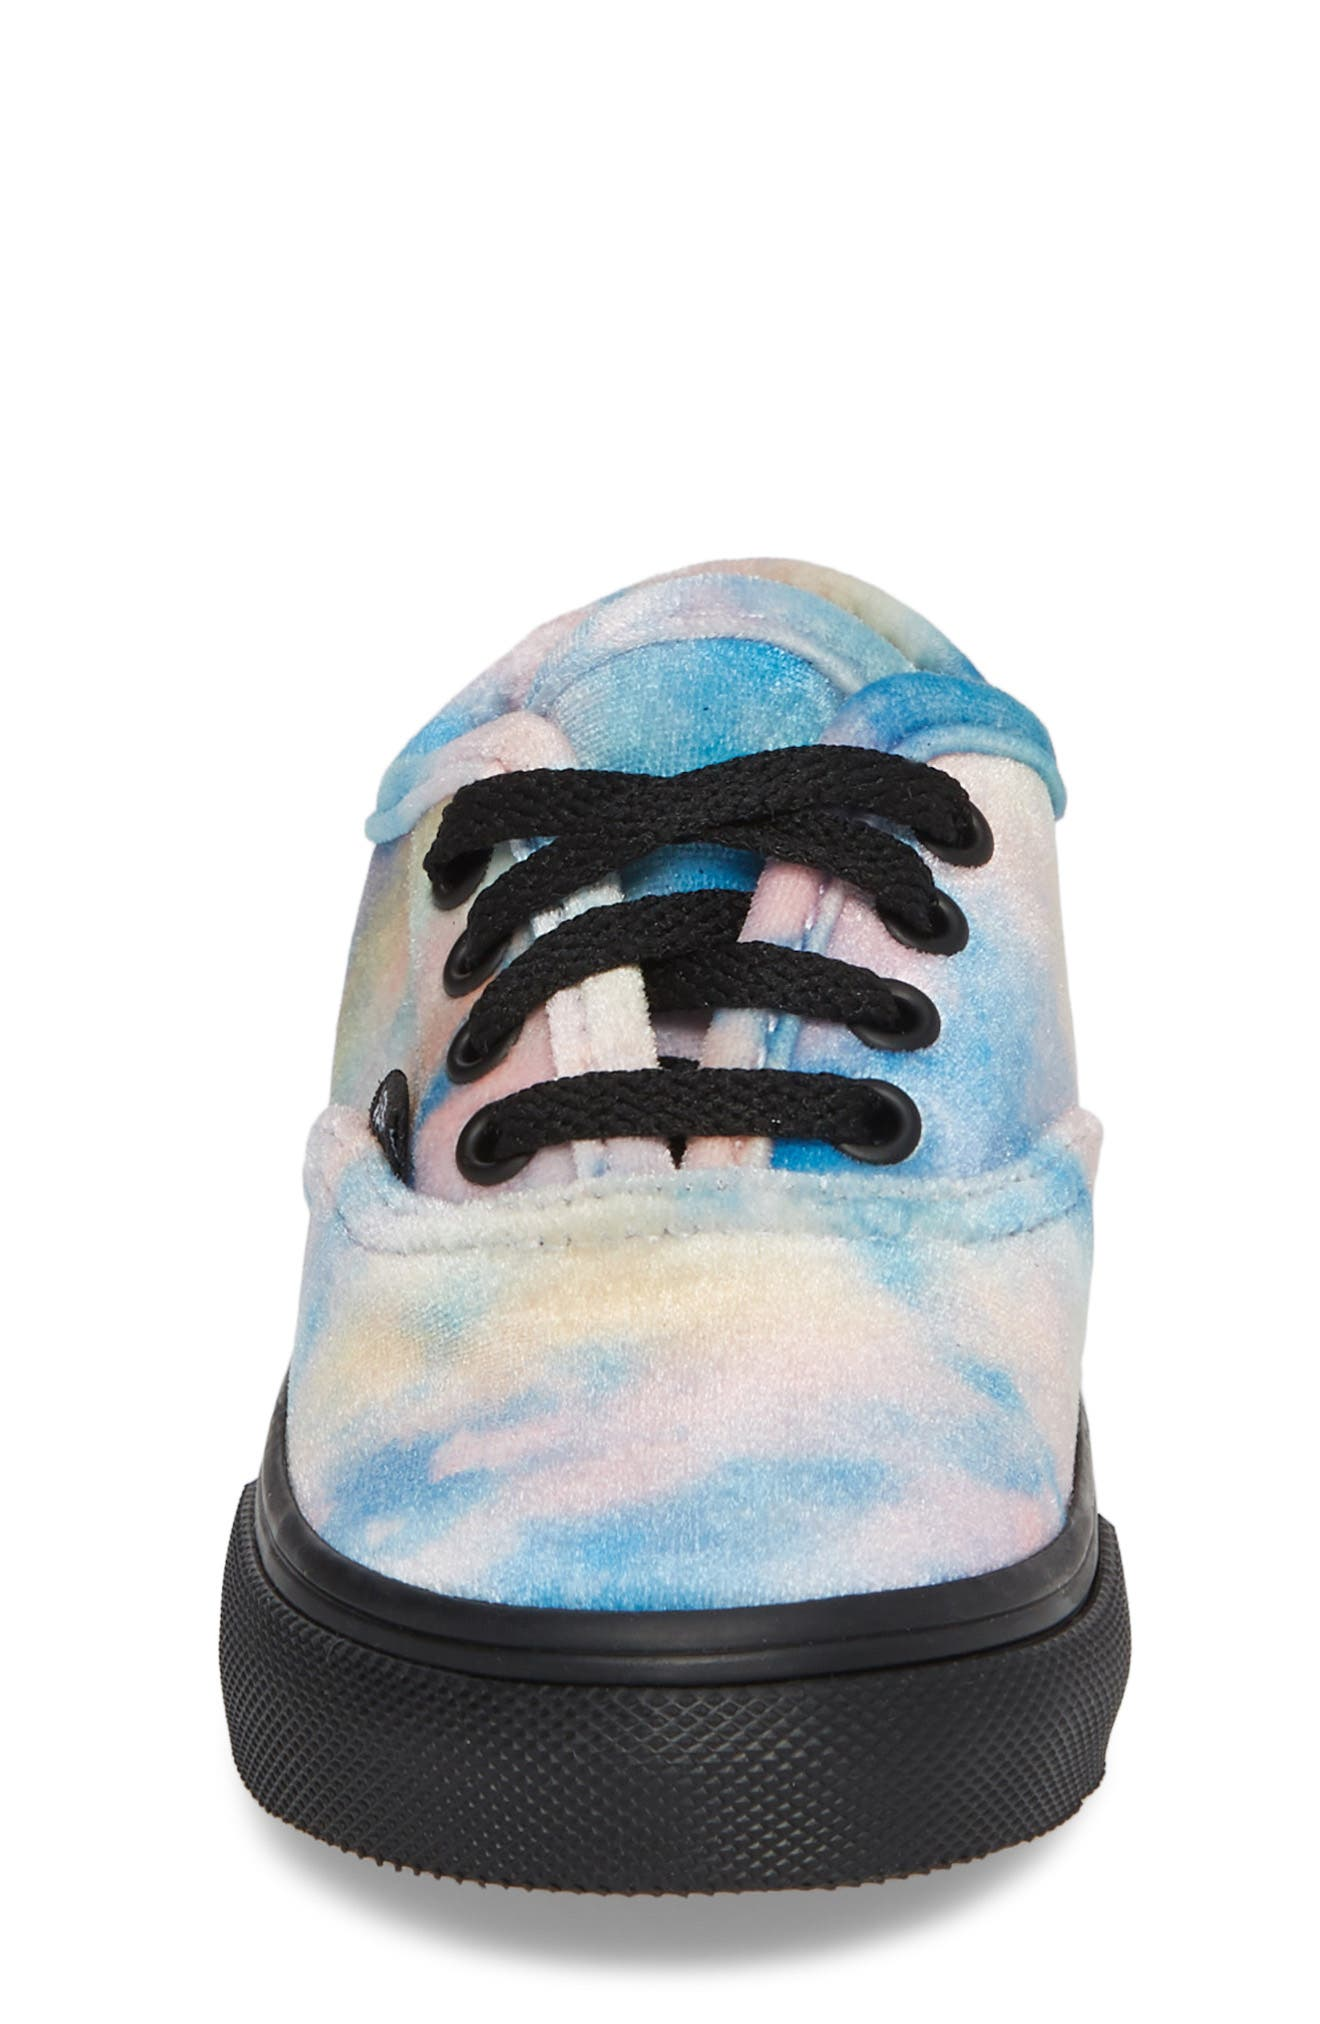 Authentic Velvet Tie Dye Sneaker,                             Alternate thumbnail 4, color,                             001